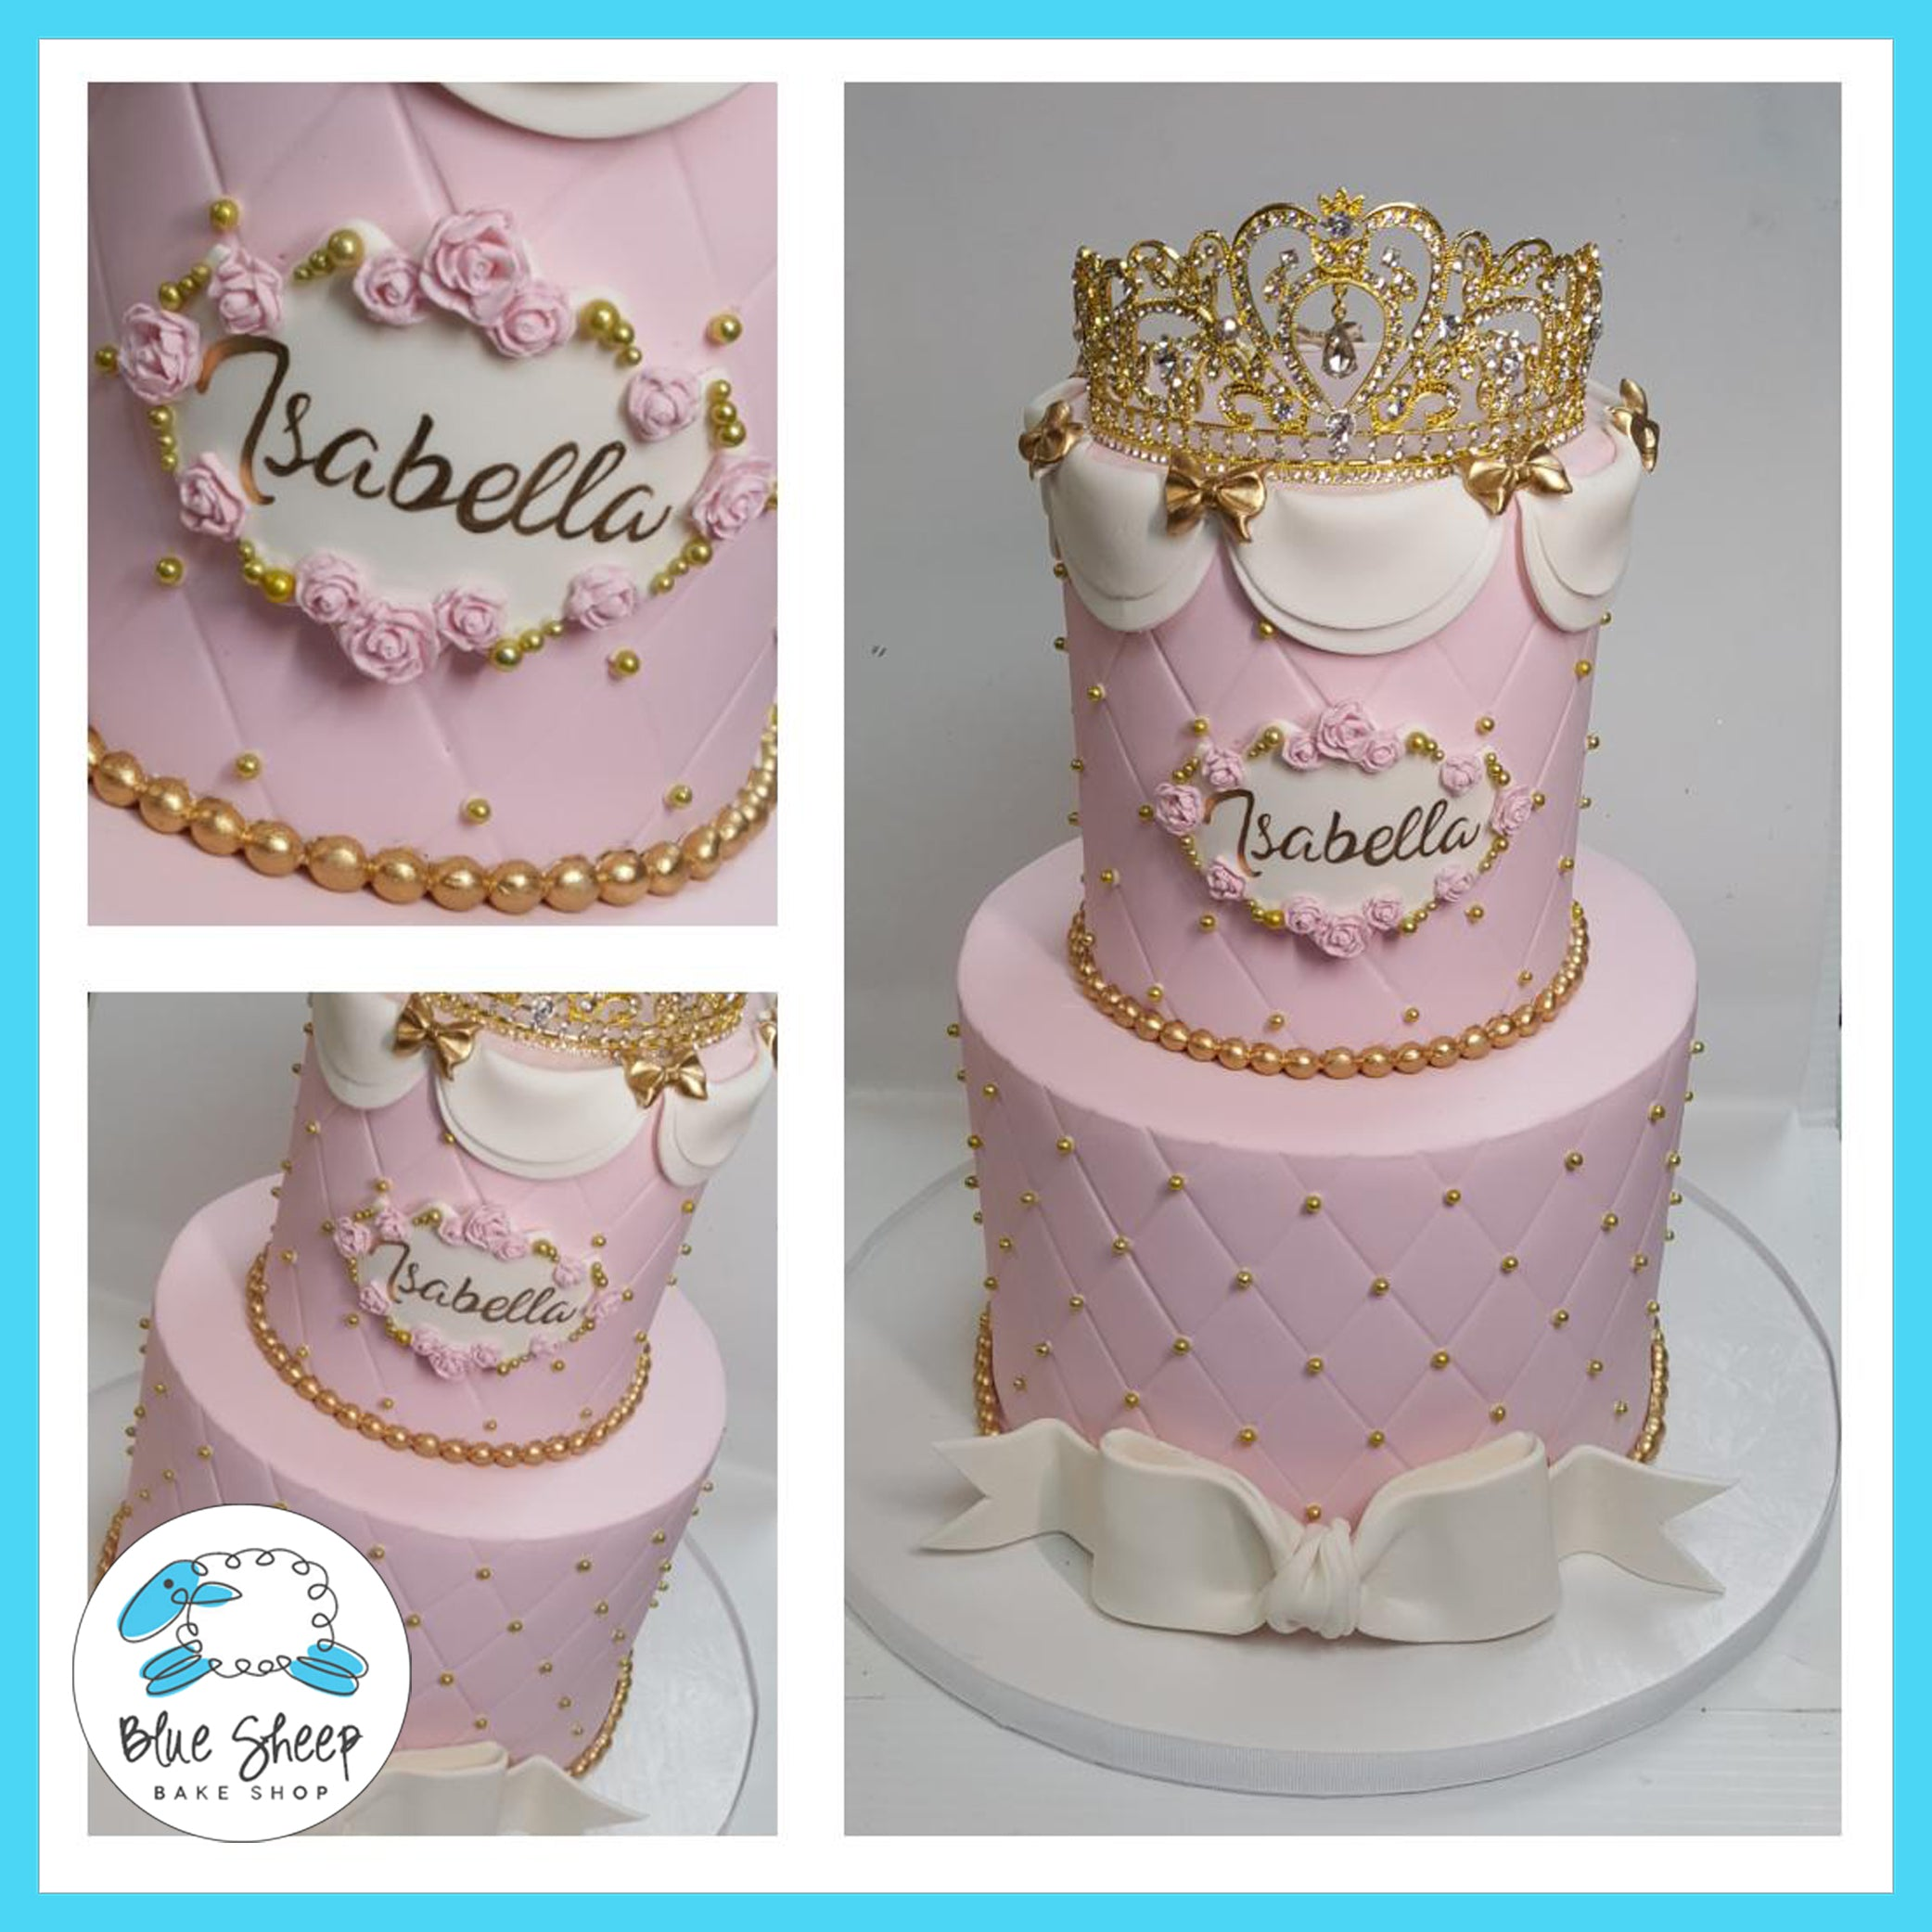 Swell Giannas Princesspink And Gold 1St Birthday Cake Blue Sheep Bake Funny Birthday Cards Online Inifodamsfinfo